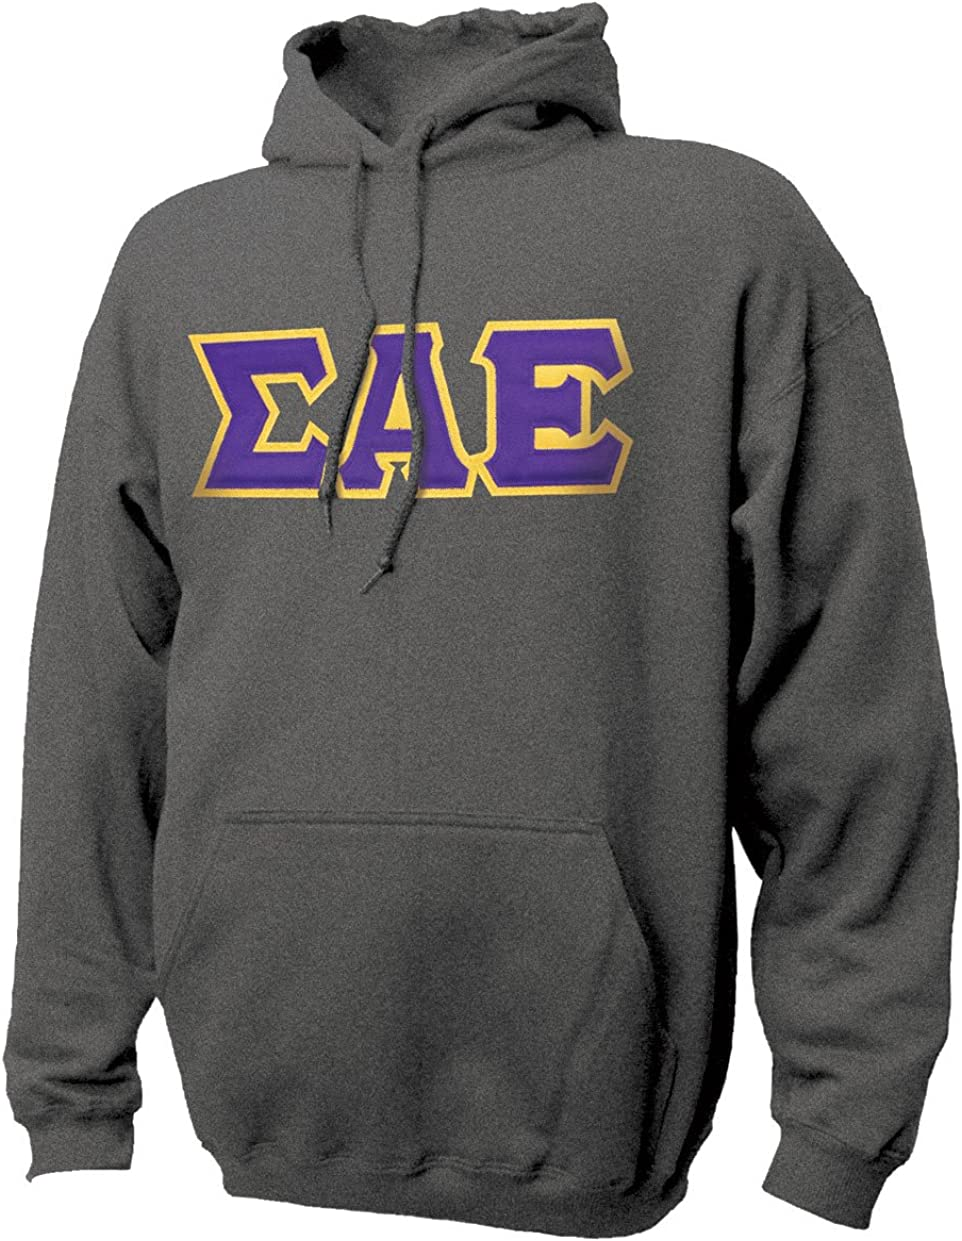 SAE Dark Heather Hoodie with Sewn On Letters